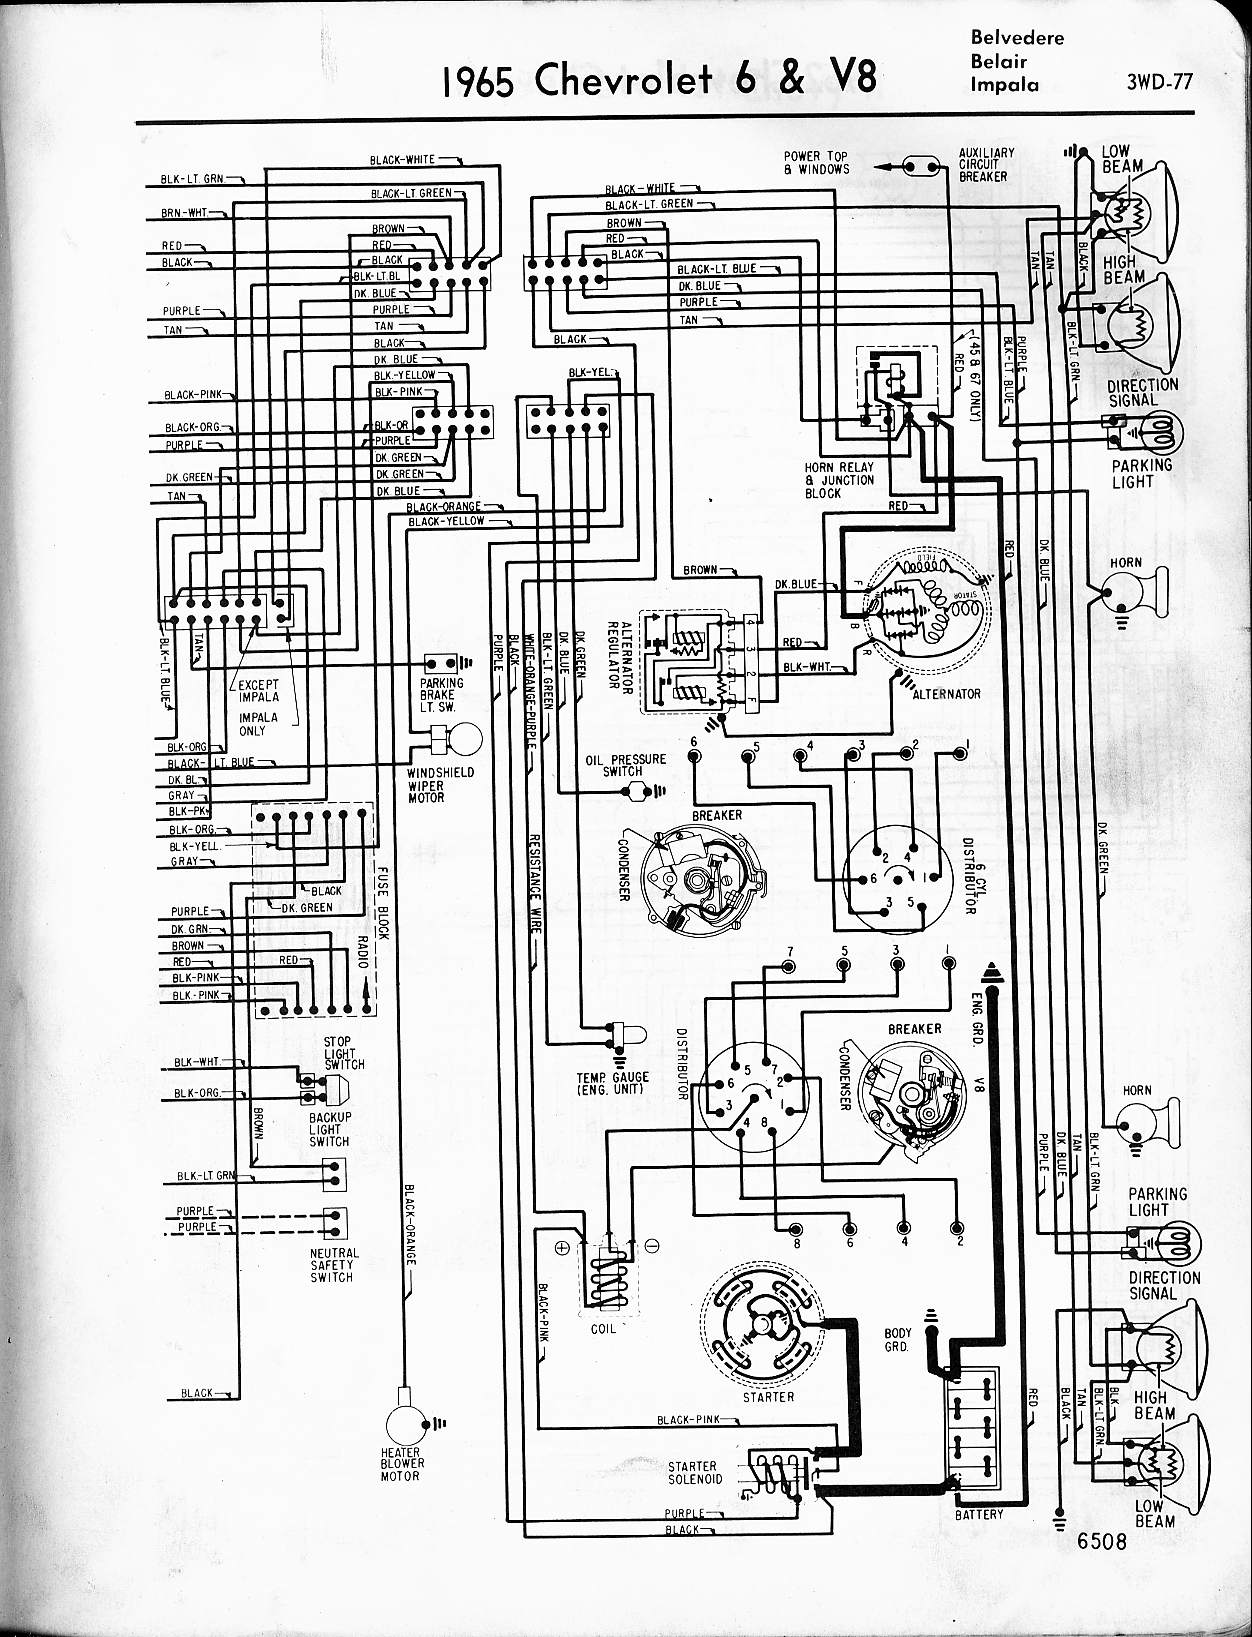 1976 Caprice Wiring Diagram Library Chevrolet 57 65 Chevy Diagrams 1965 6 V8 Biscayne